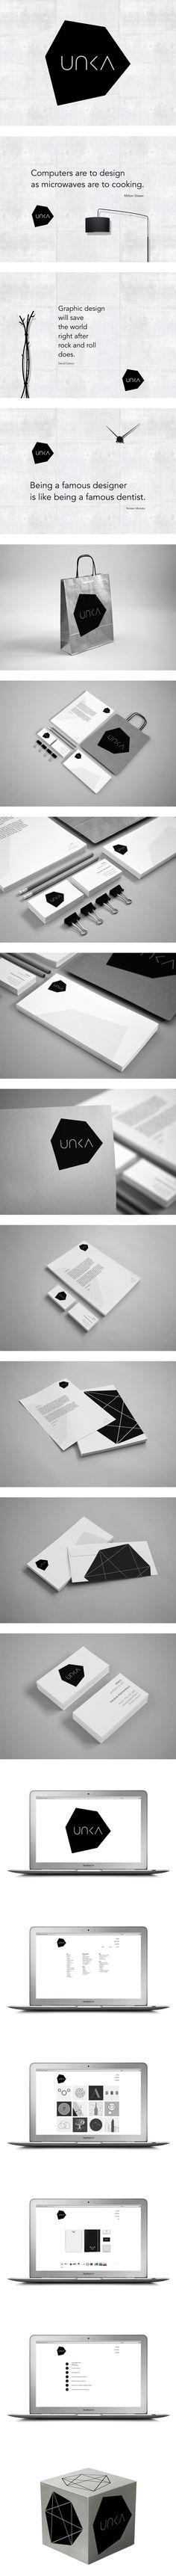 UNKA by Ven Klement, via Behance curated by Packaging Diva PD #identity #packaging #branding #marketing